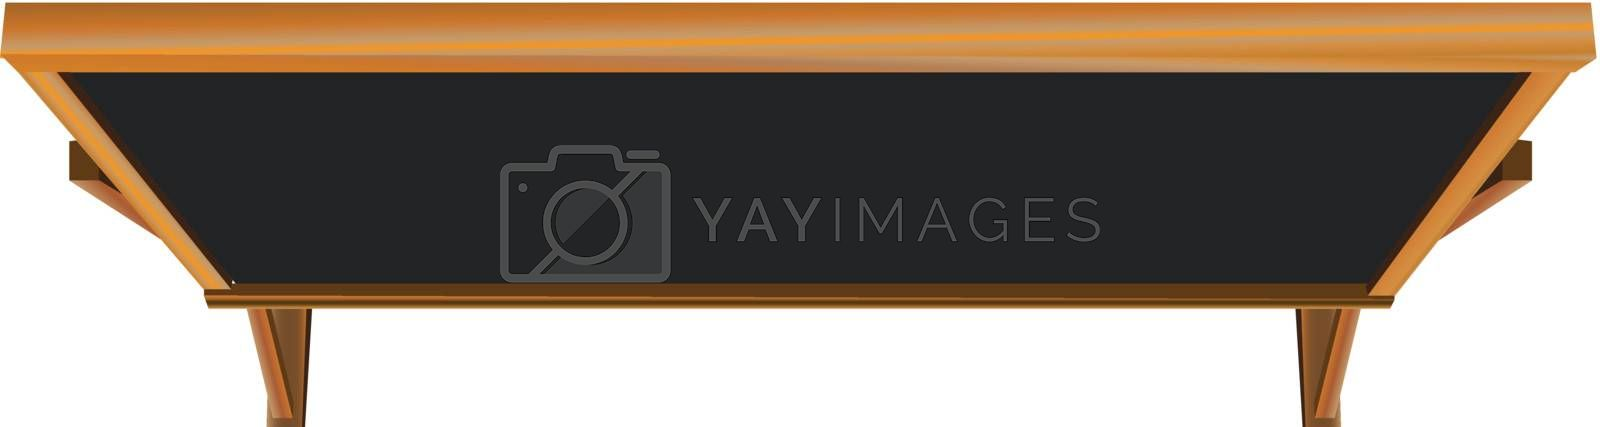 Old-fashioned chalk board in a general education course. Vector illustration.